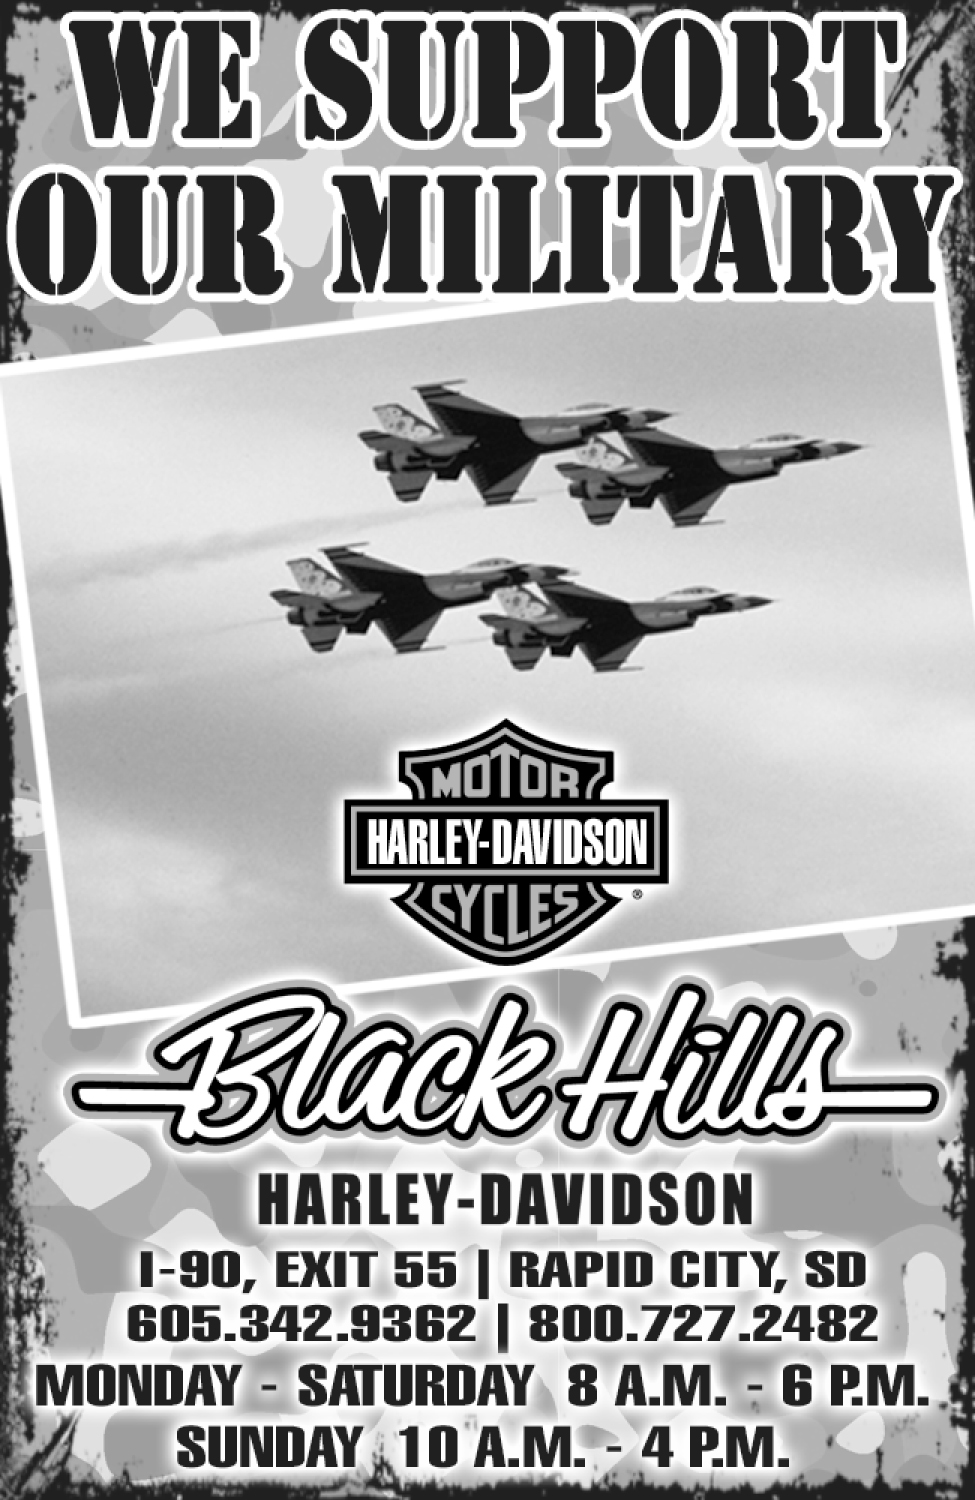 Black Hills Harley 060311 copy.jpg